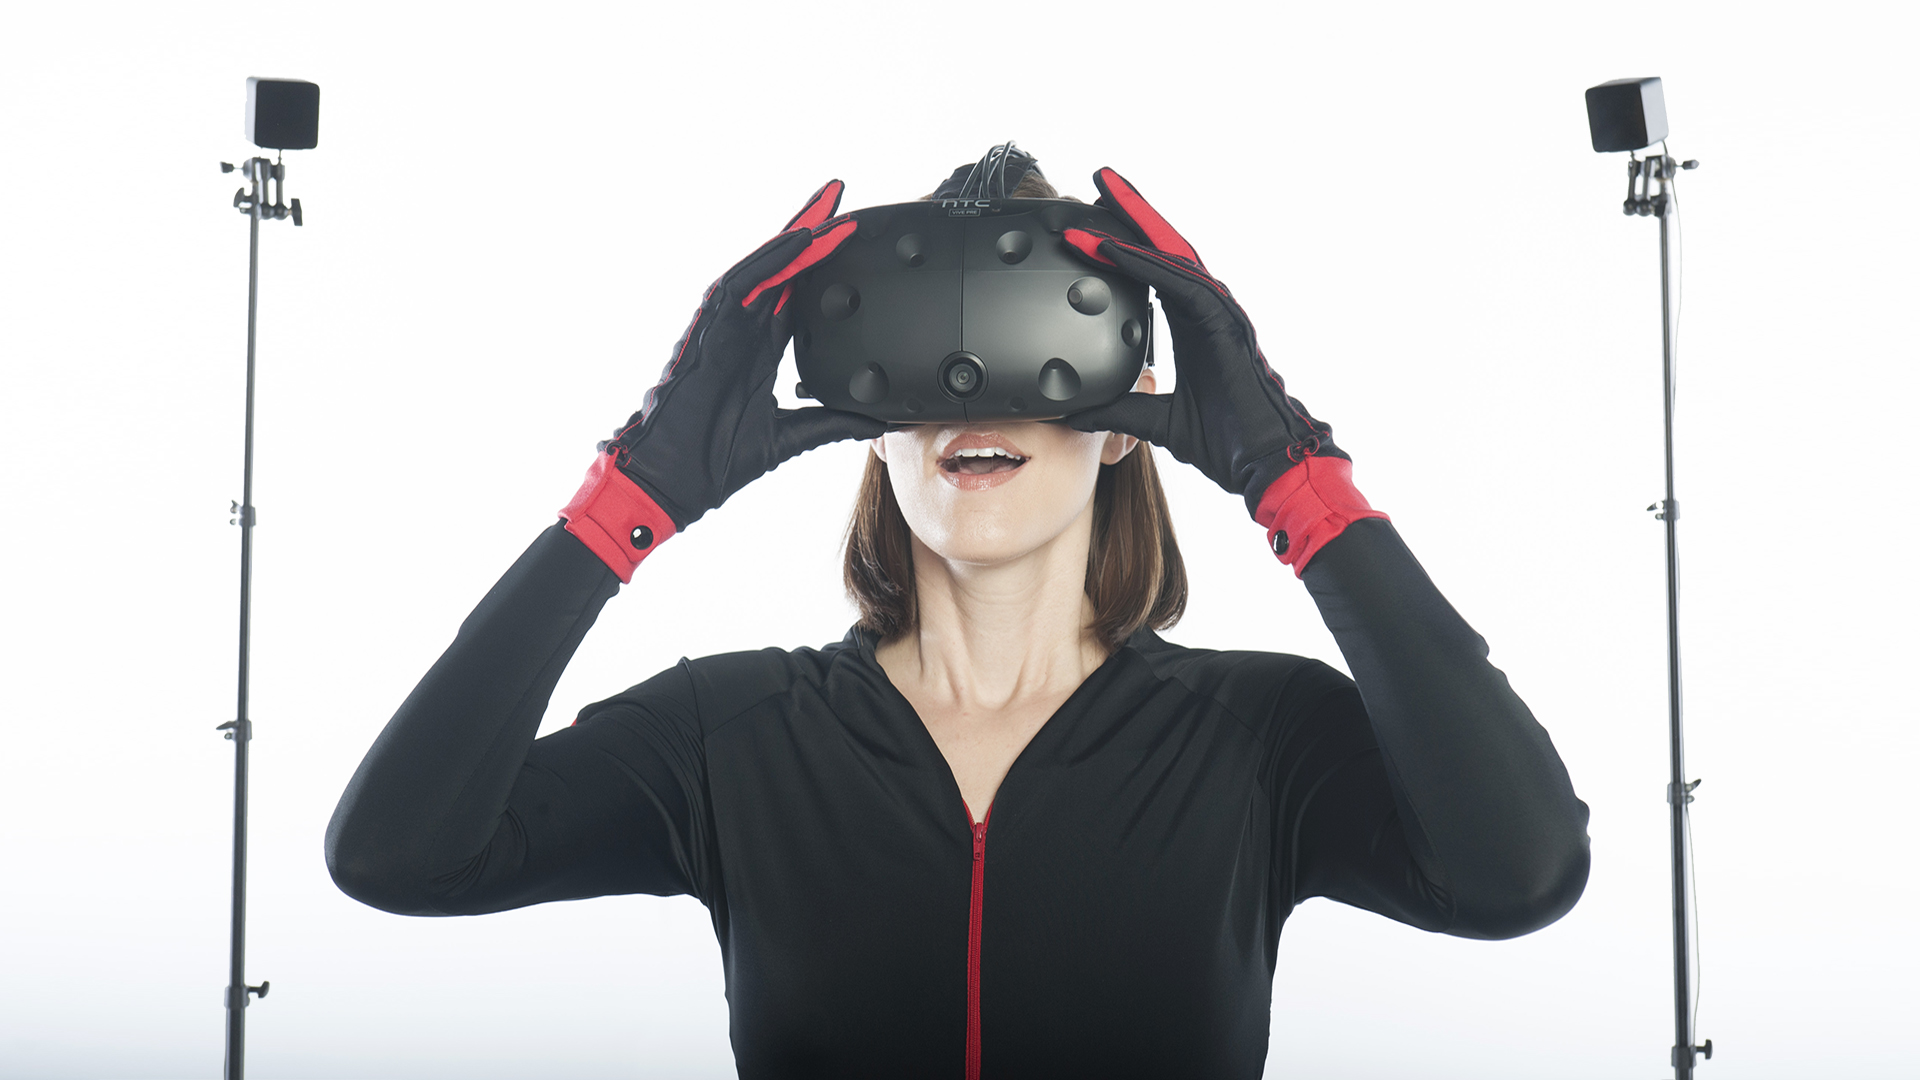 Inertial Motion Capture Suits and Gloves in Augmented Reality and Virtual Reality